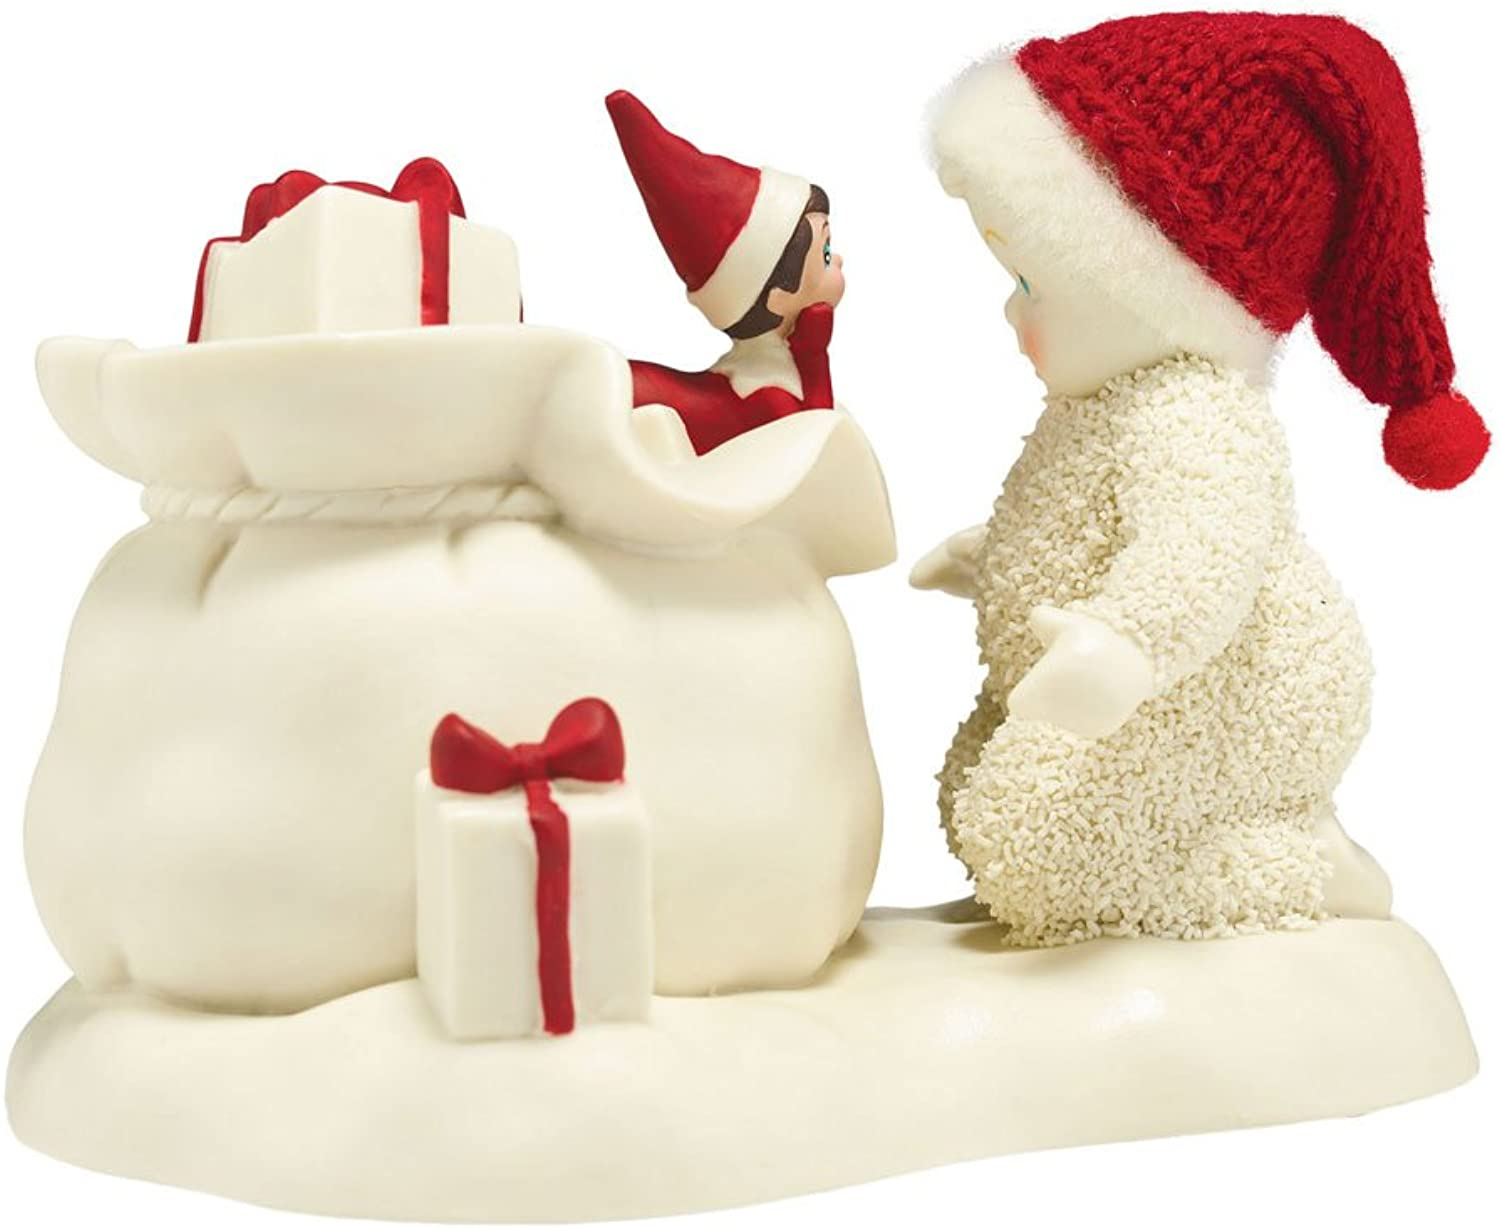 "Department 56 Snowbabies ""Elf On The Shelf Helps Santa"" Porcelain Figurine, 3.6"""